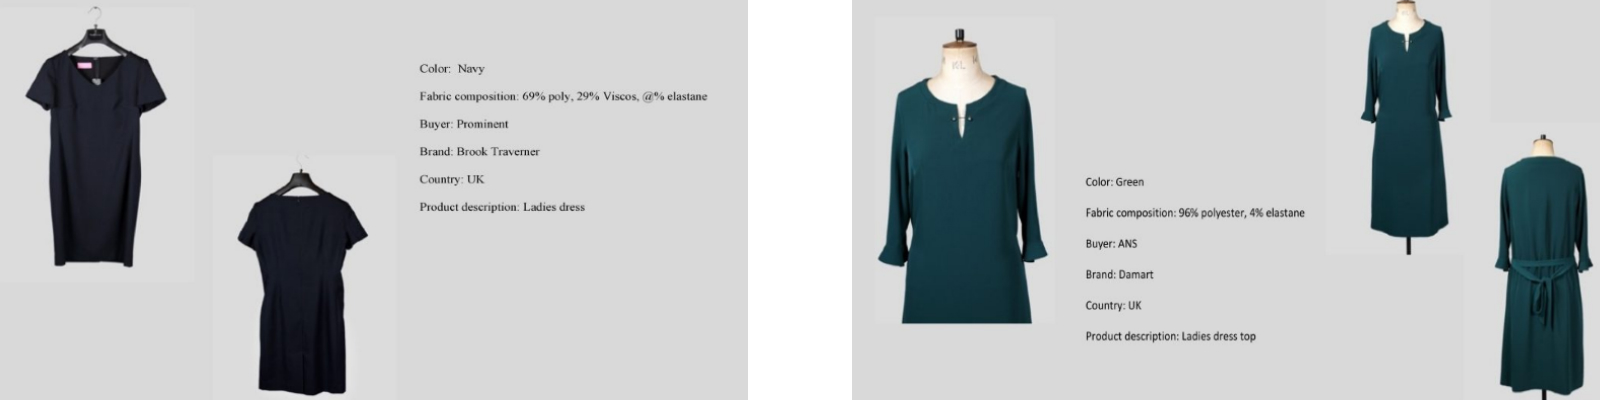 LGFG women's luxury dresses and skirts for wholesale distribution